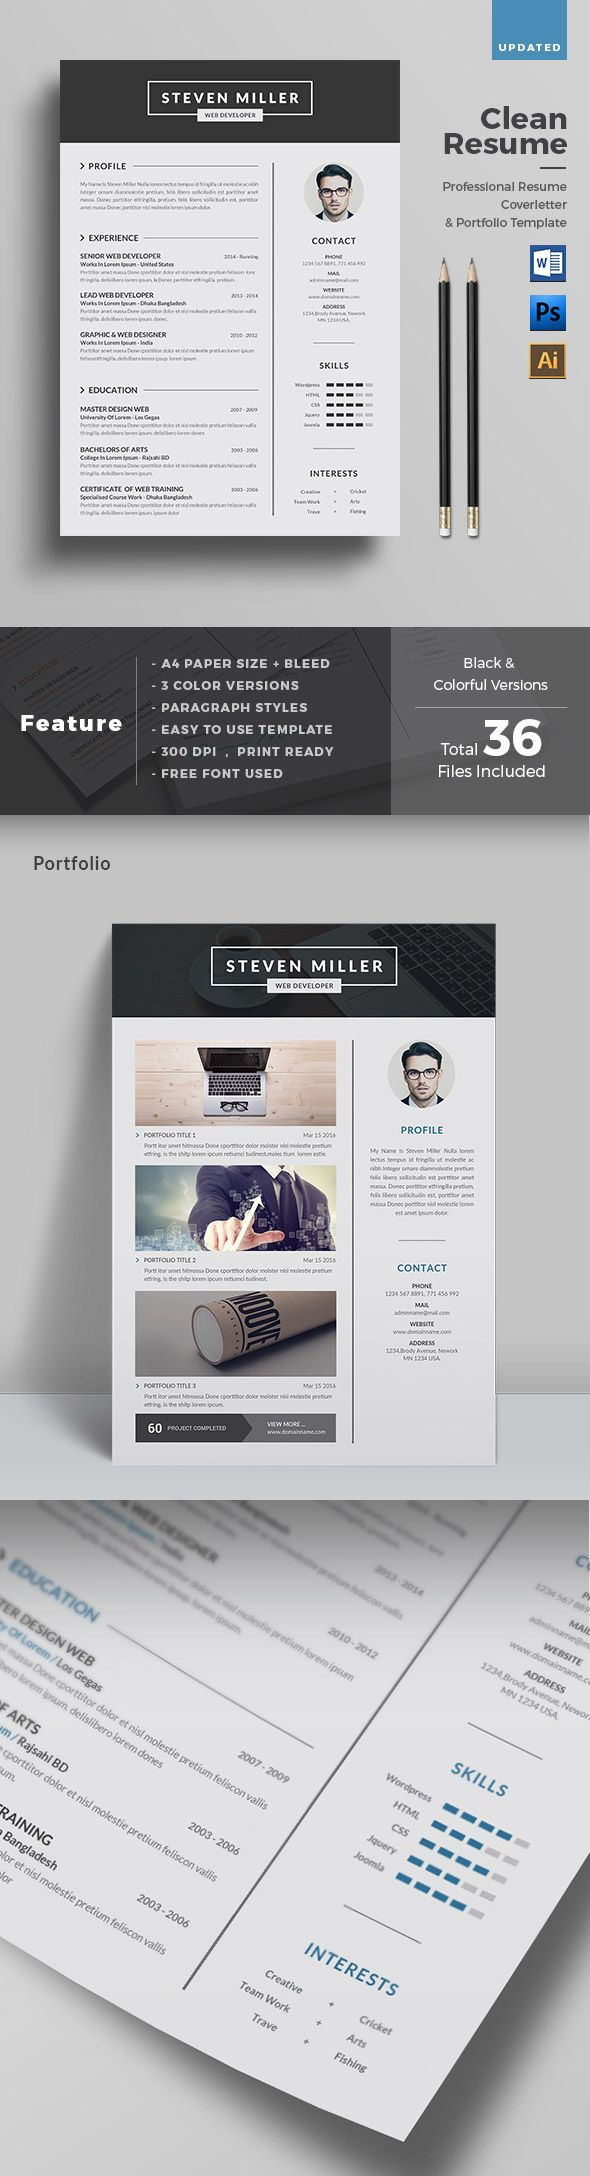 Clean Creative Resume Template                                                                                                                                                                                 More